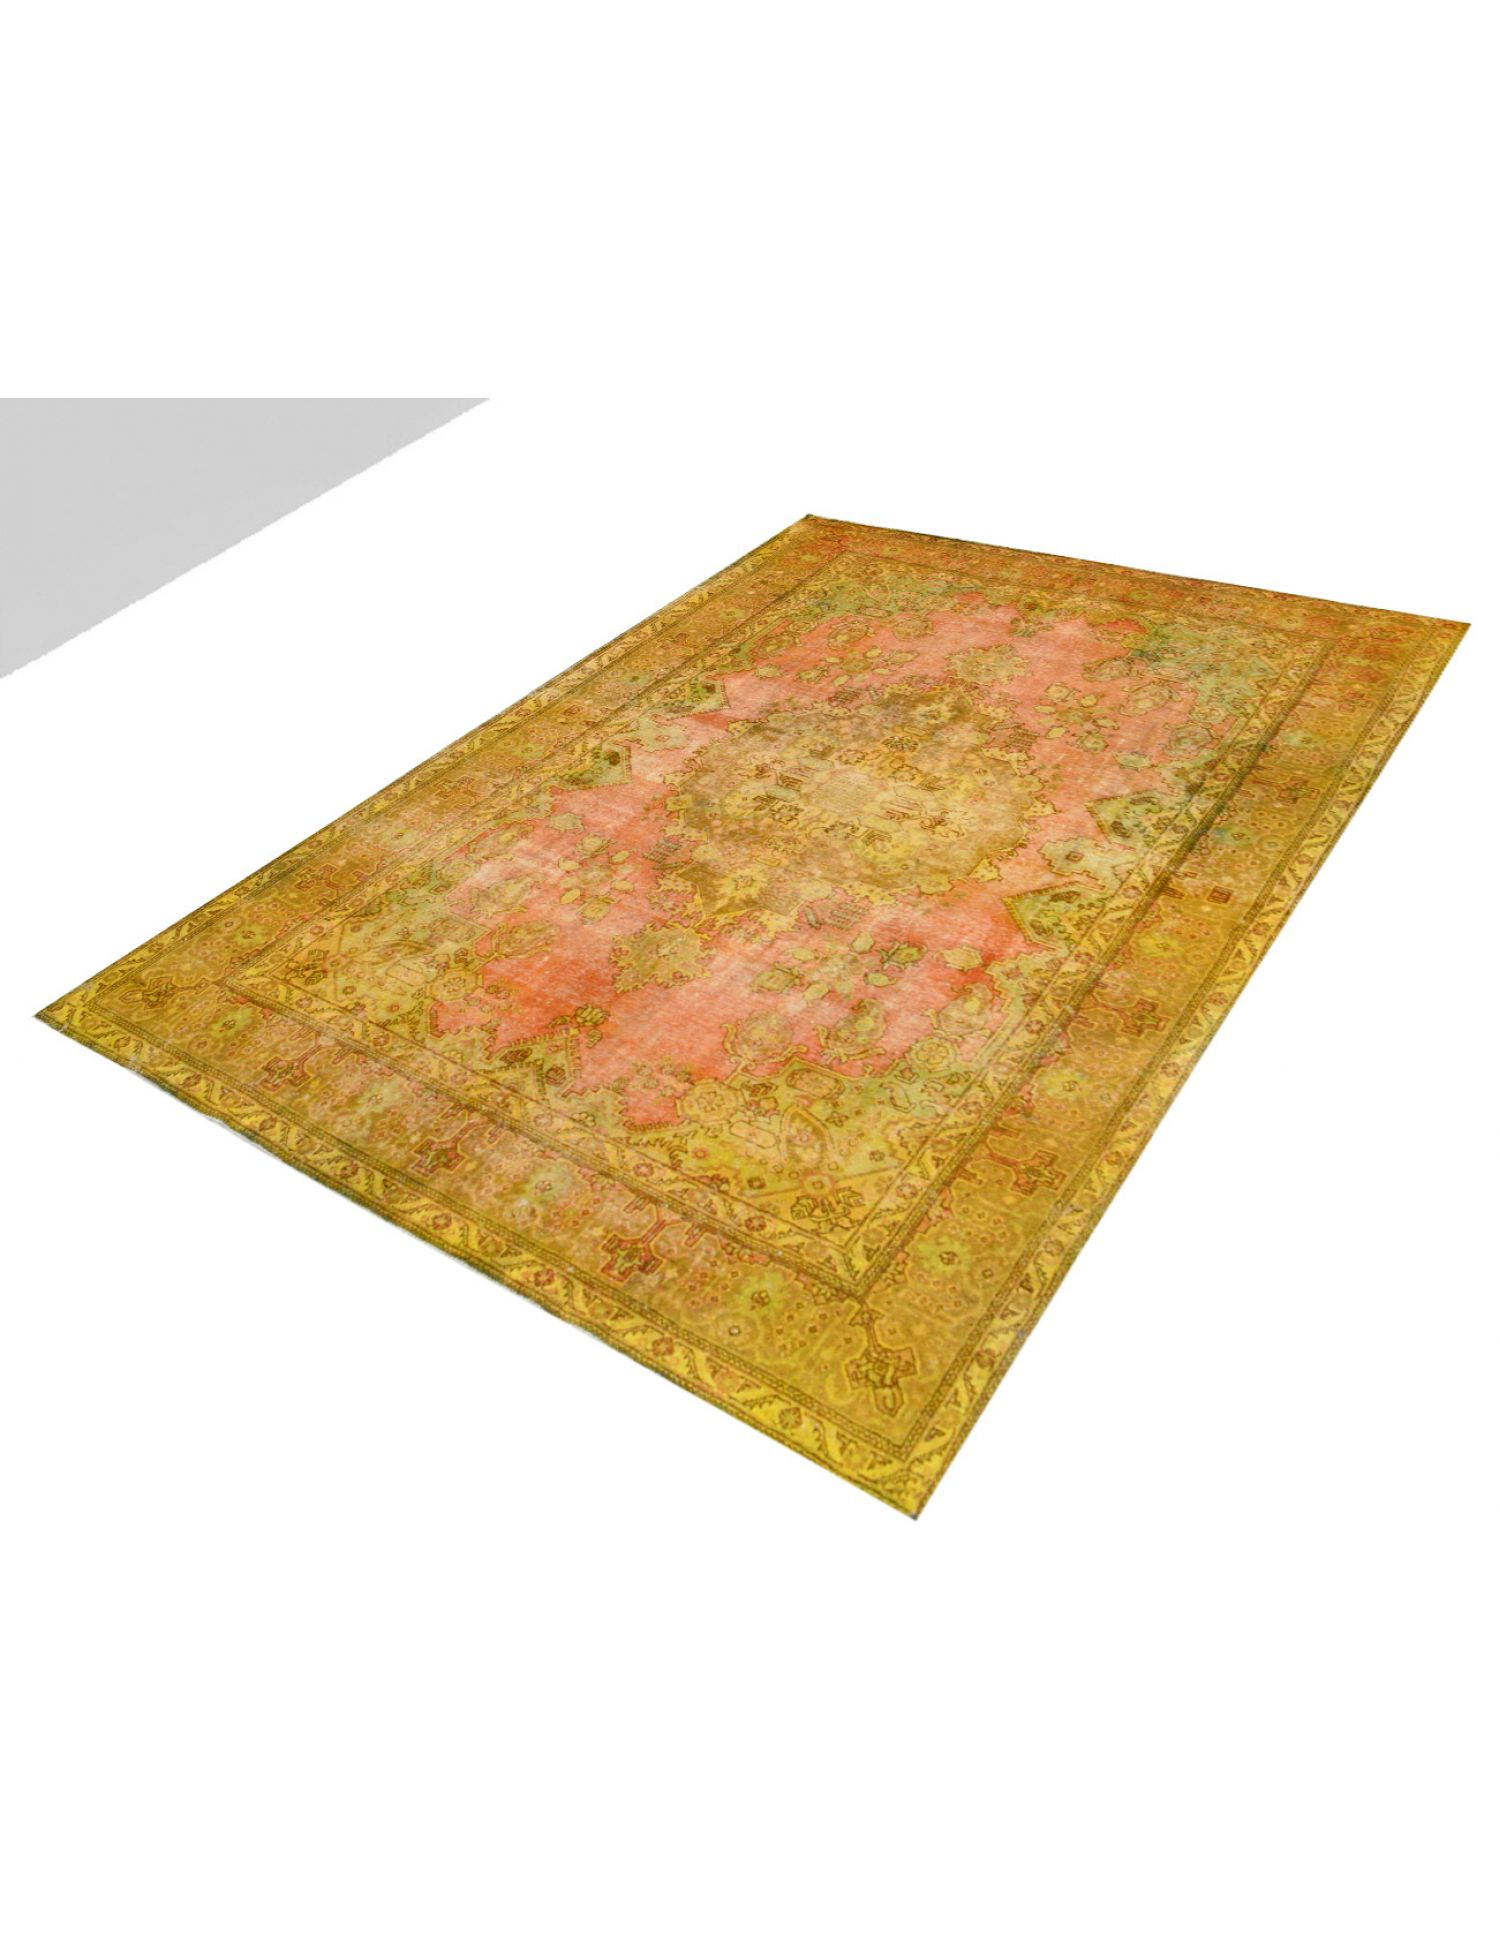 Vintage Carpet  yellow <br/>394 x 286 cm